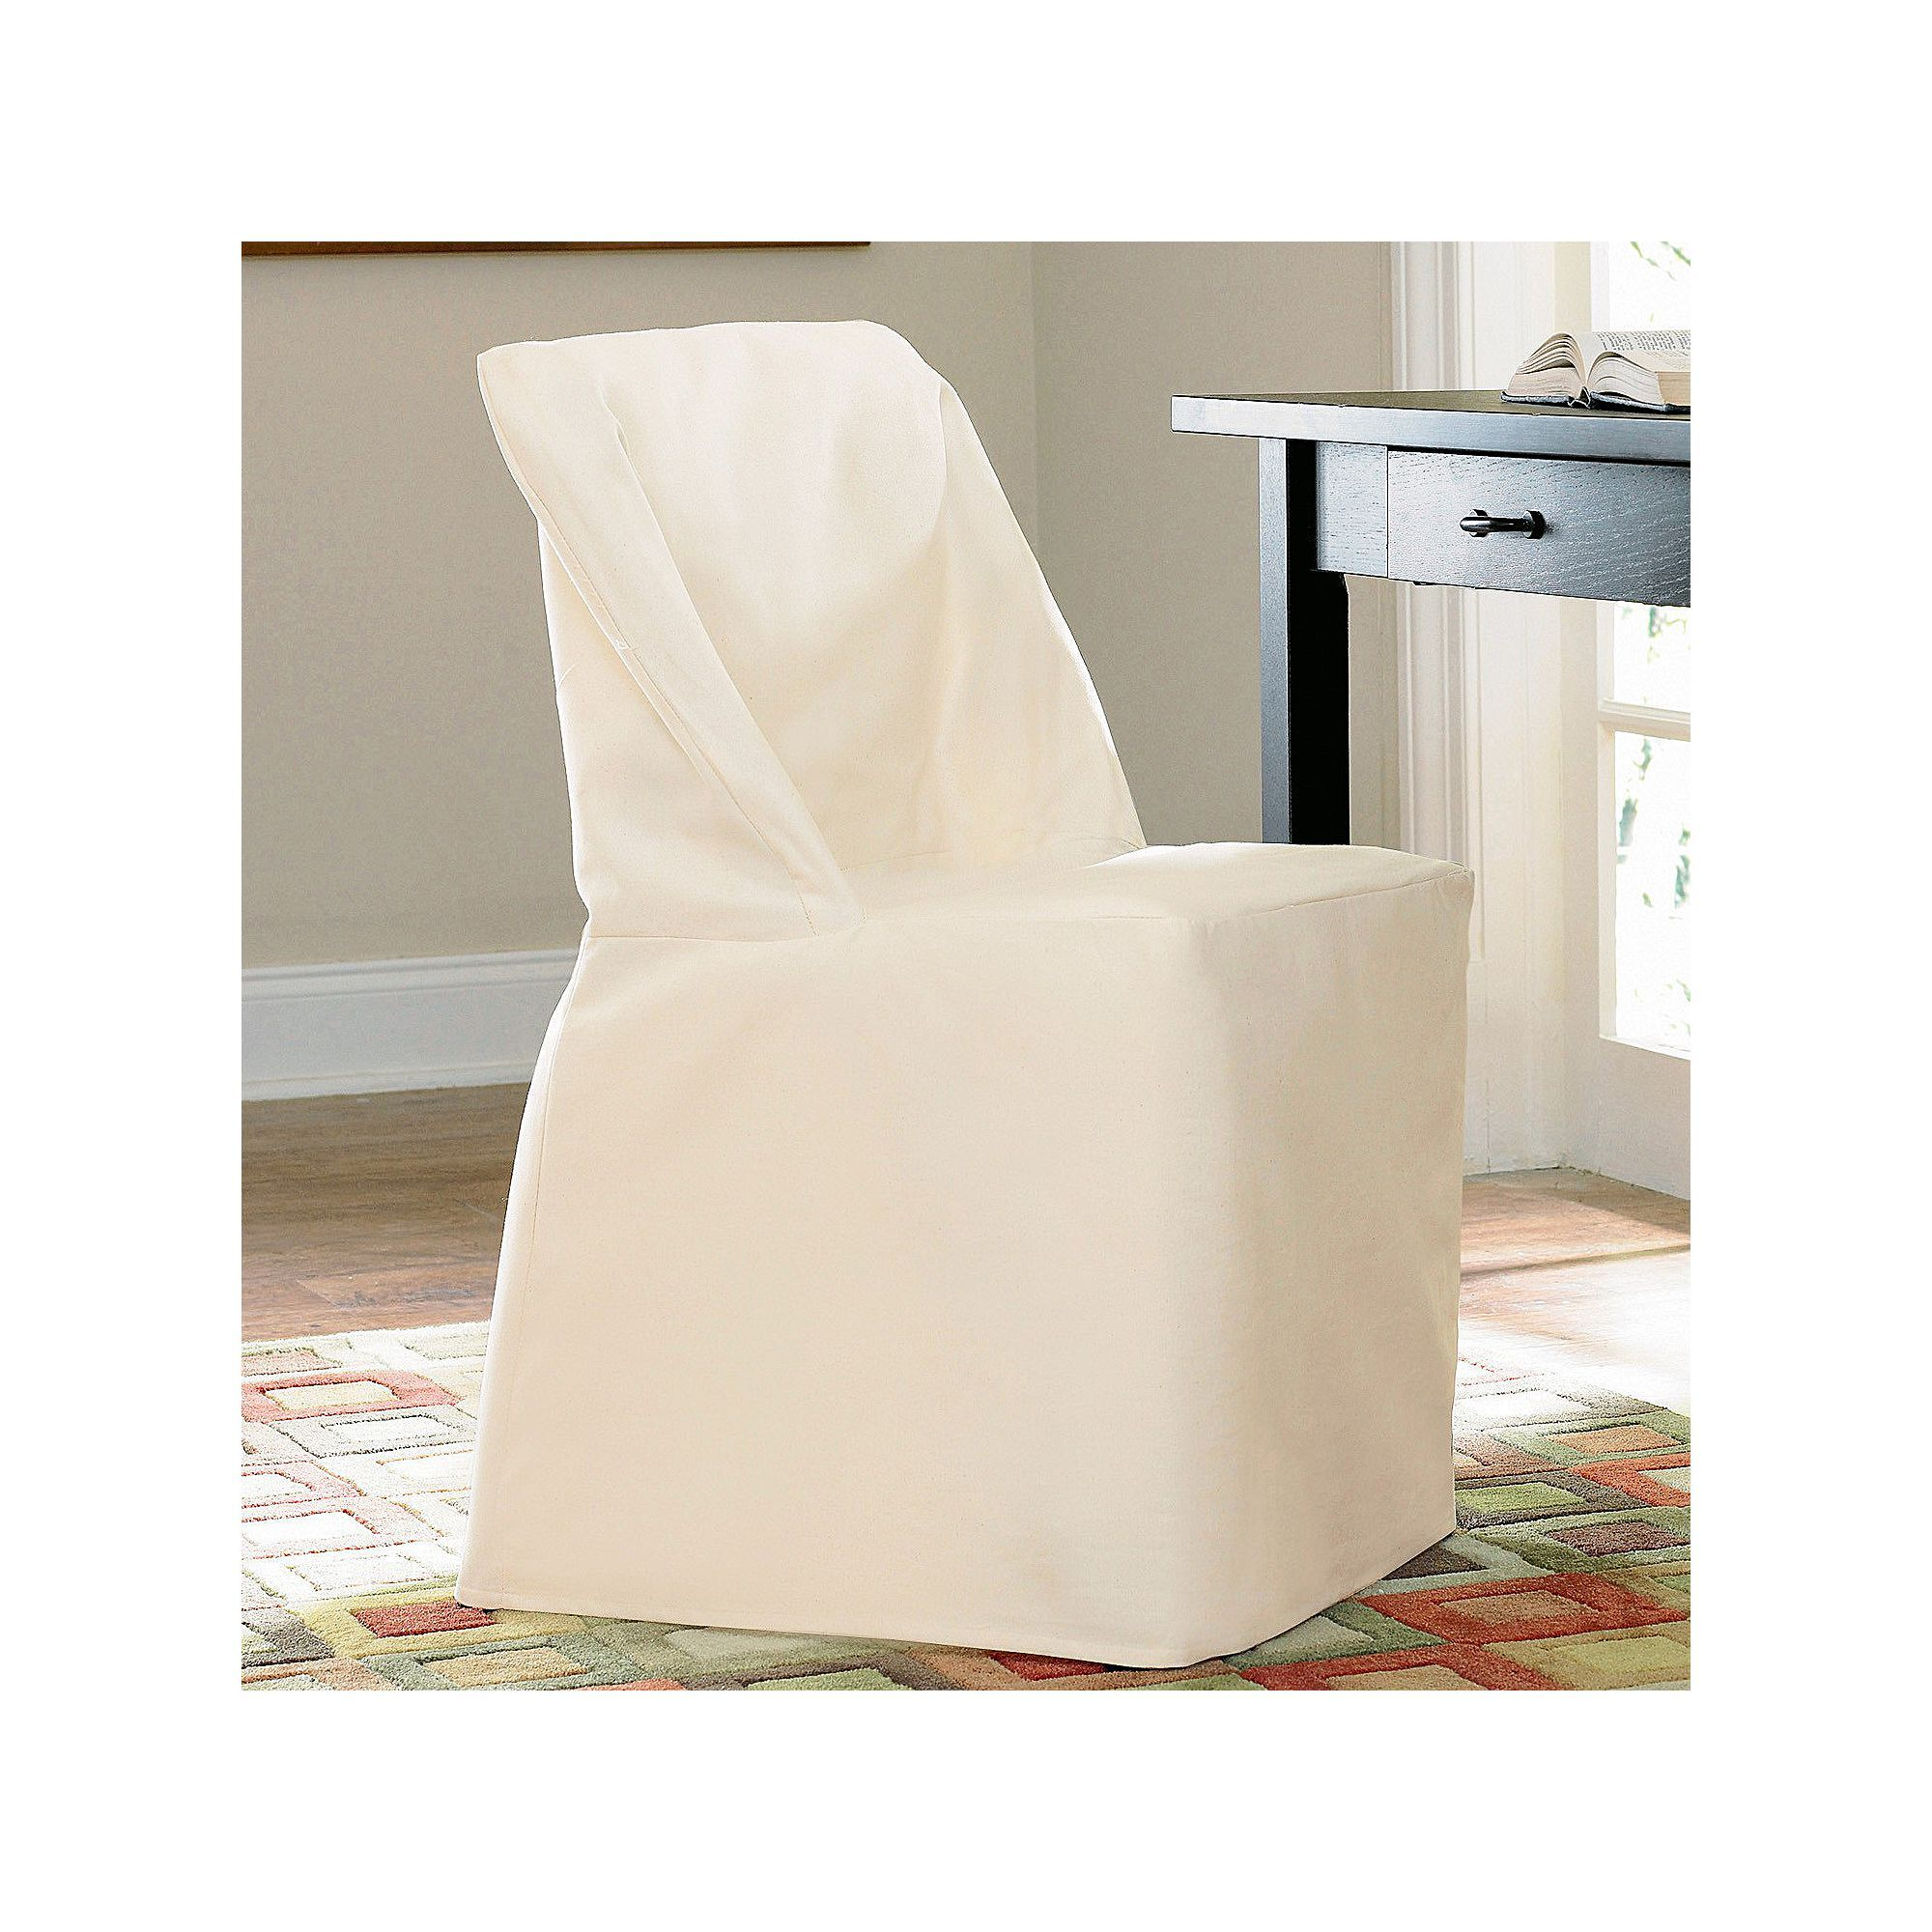 Admirable Sure Fit Solid Duck Cloth Folding Chair Slipcover White Pabps2019 Chair Design Images Pabps2019Com